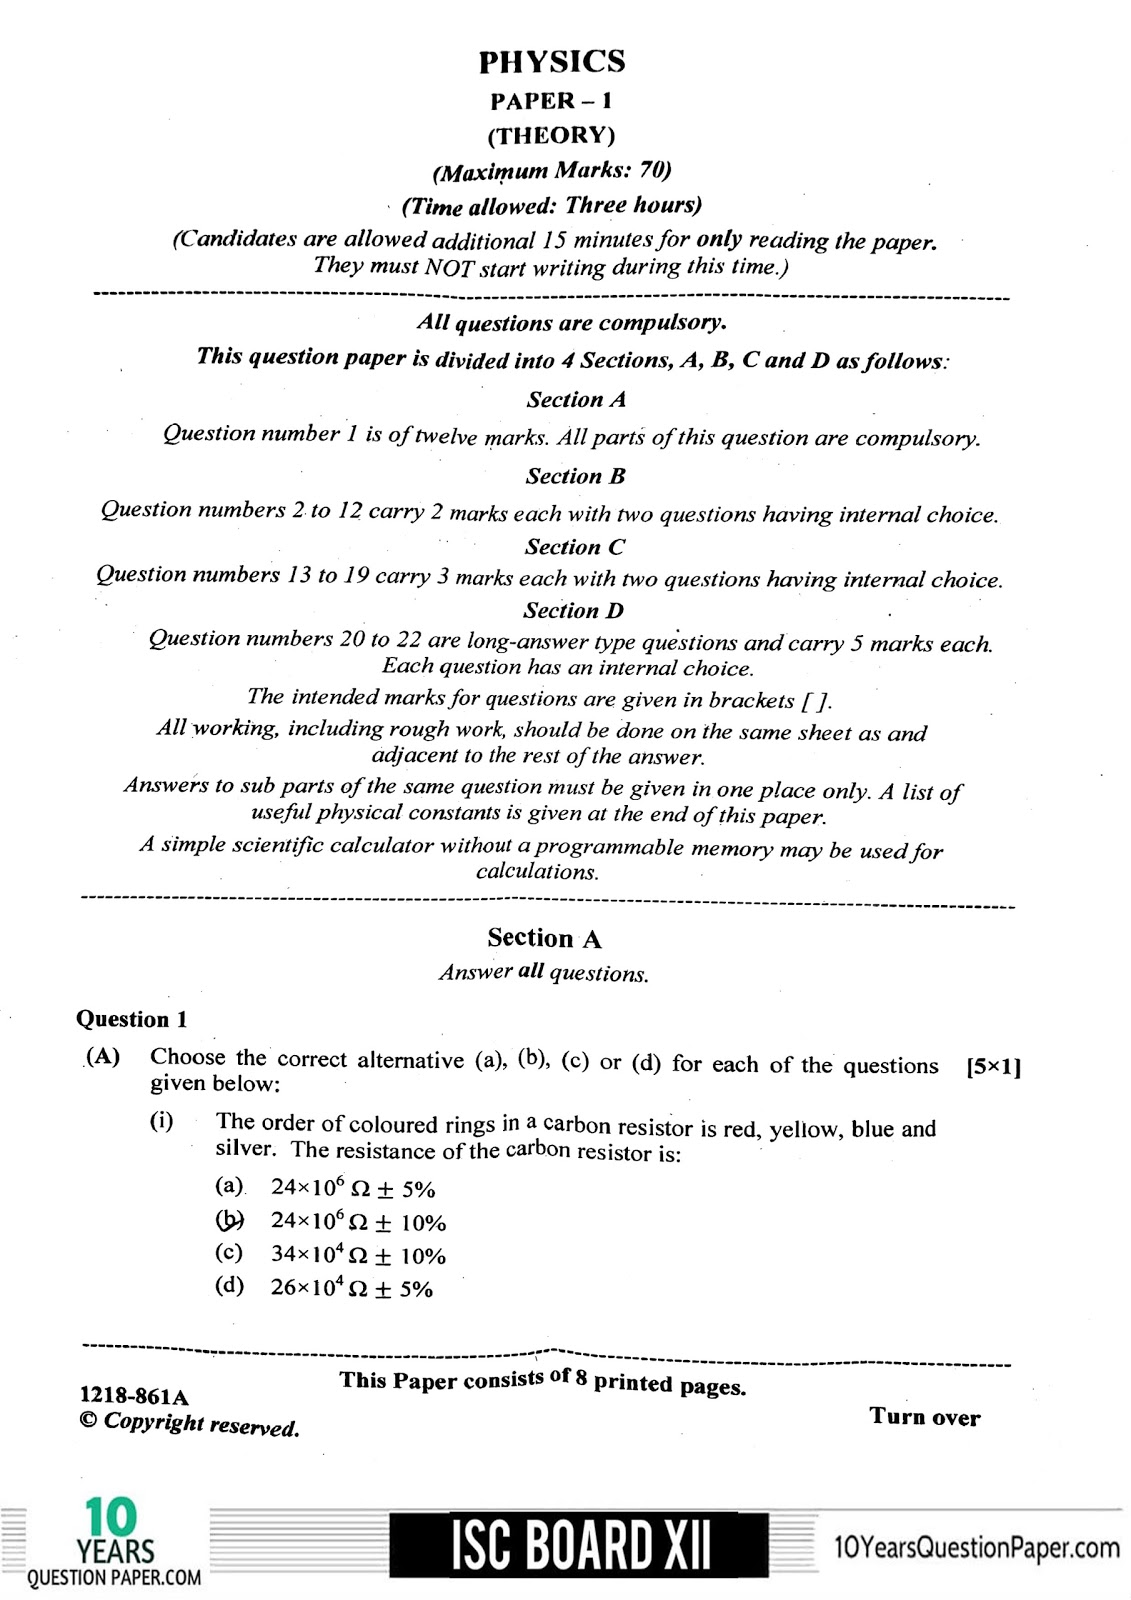 isc 2018 class 12th Physics paper 1 question paper